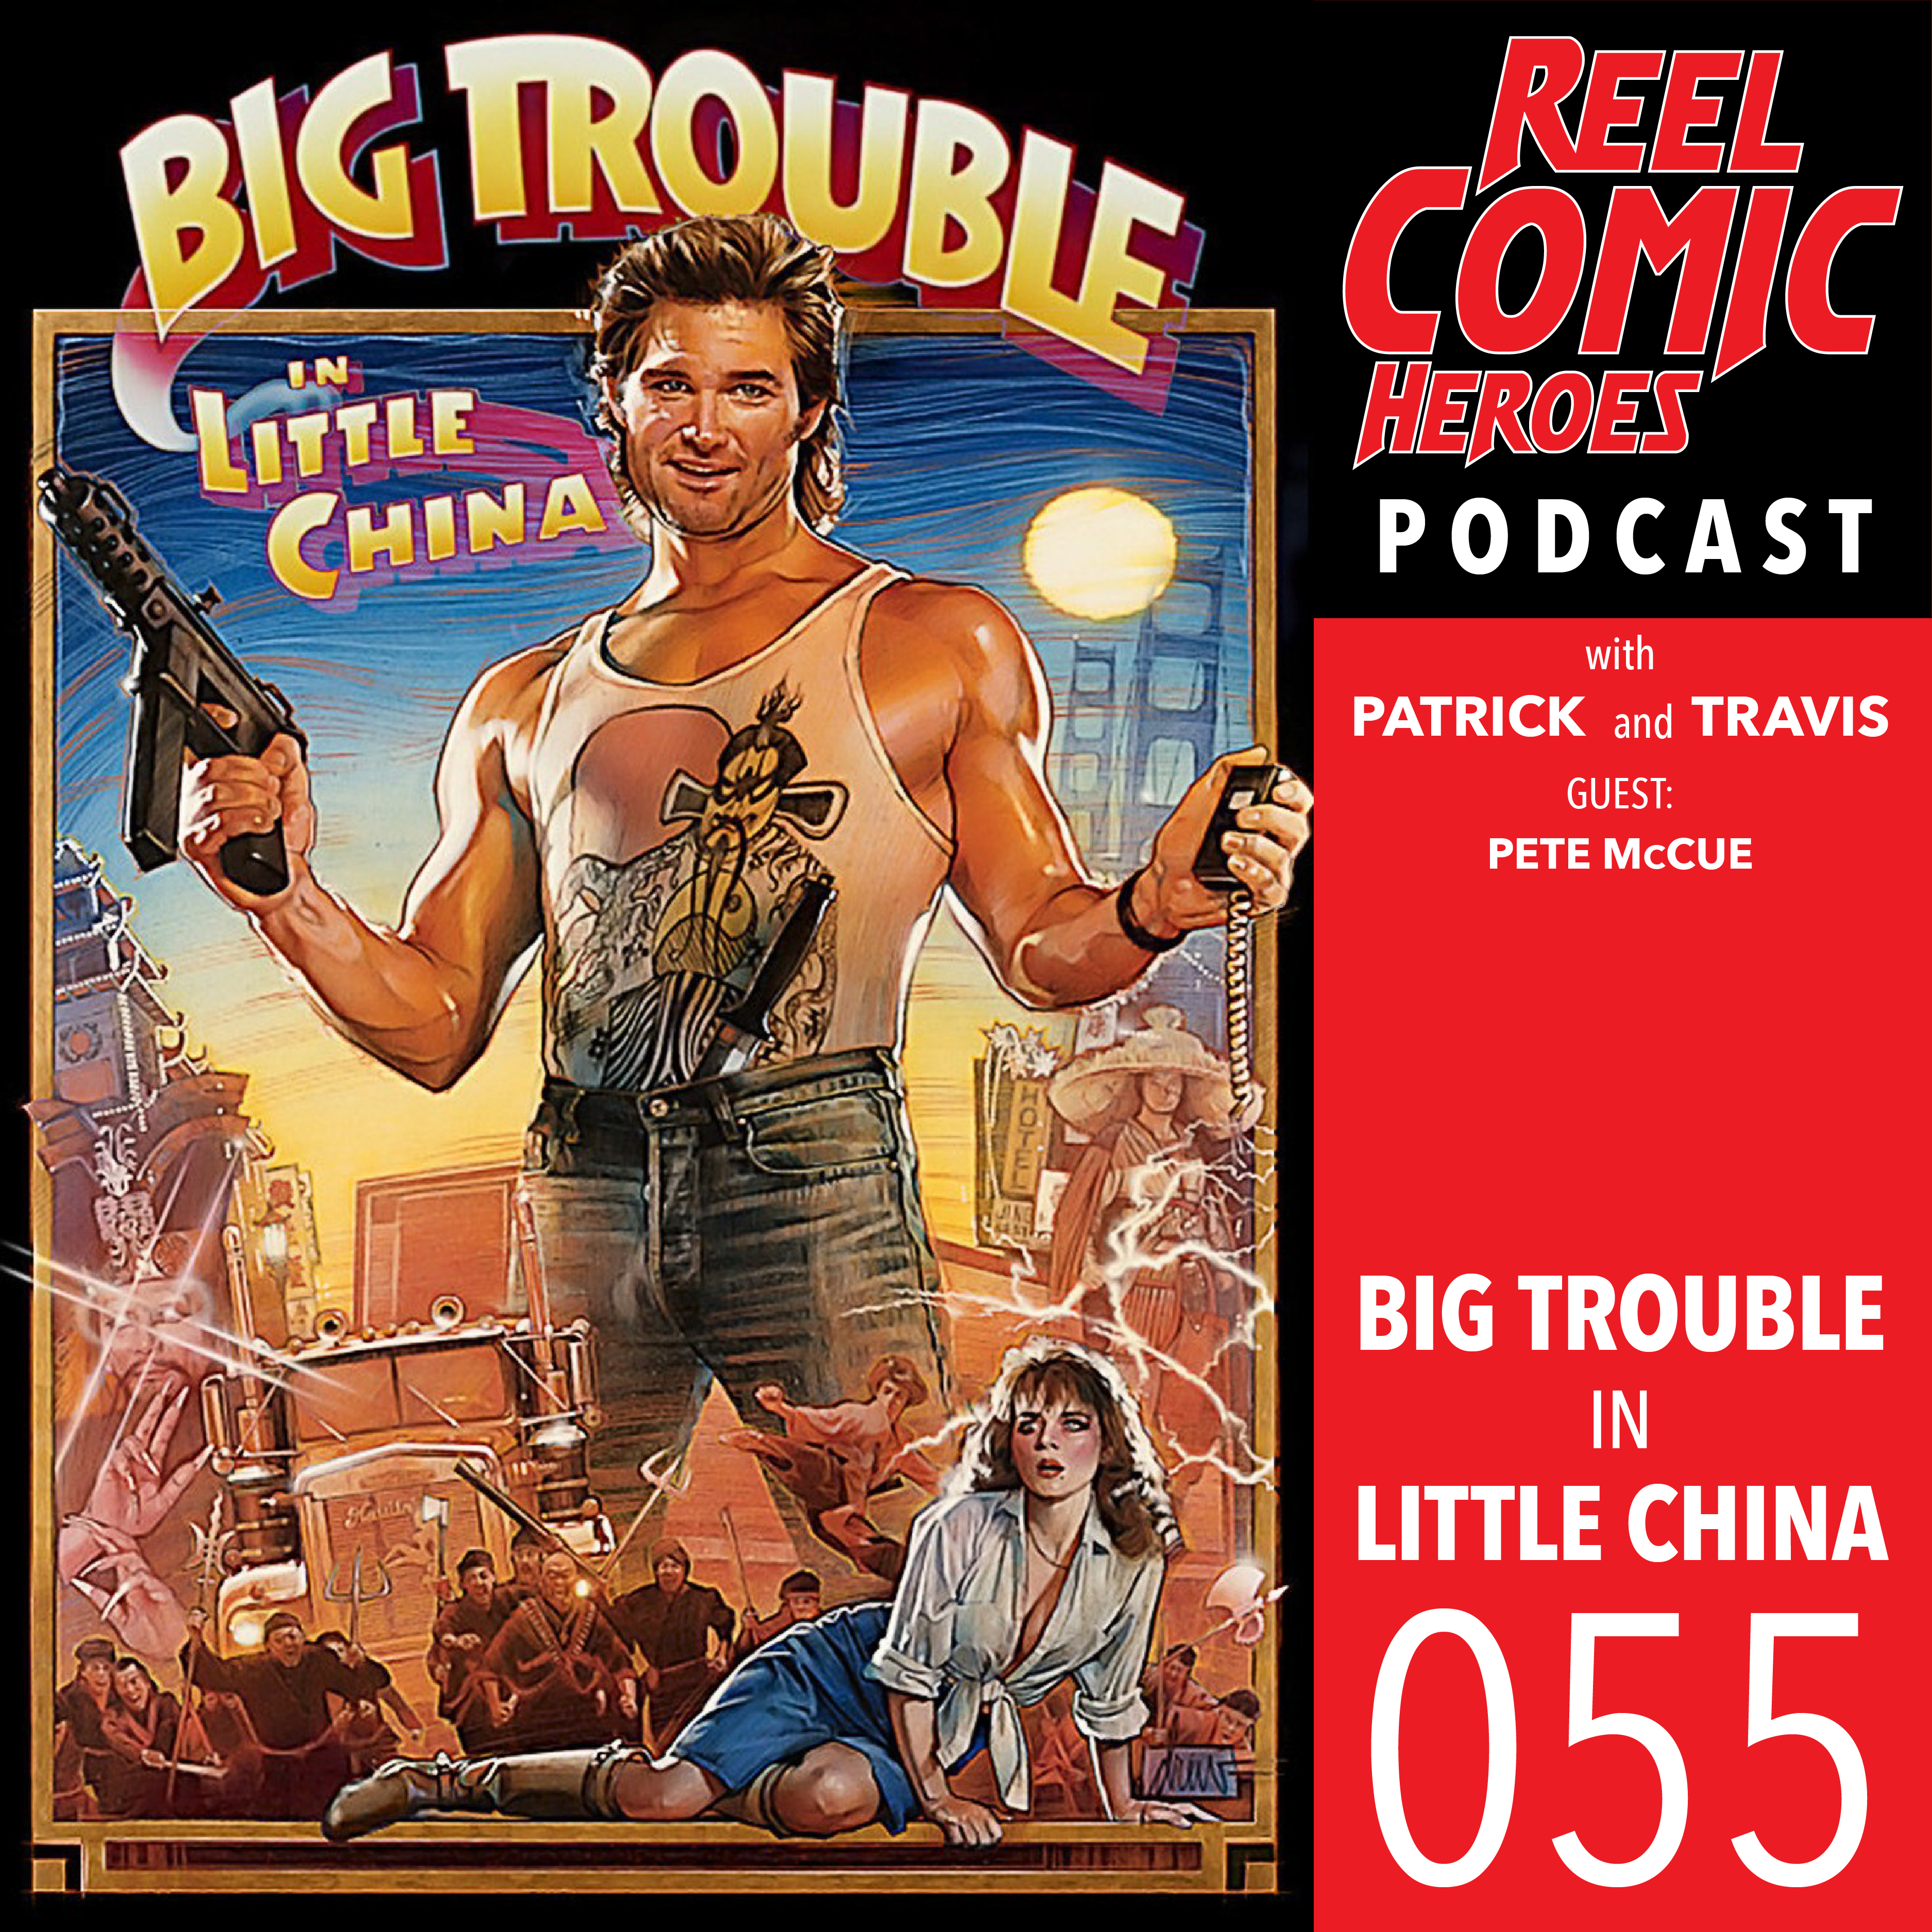 Artwork for Reel Comic Heroes 055 - Big Trouble in Little China with Pete McCue